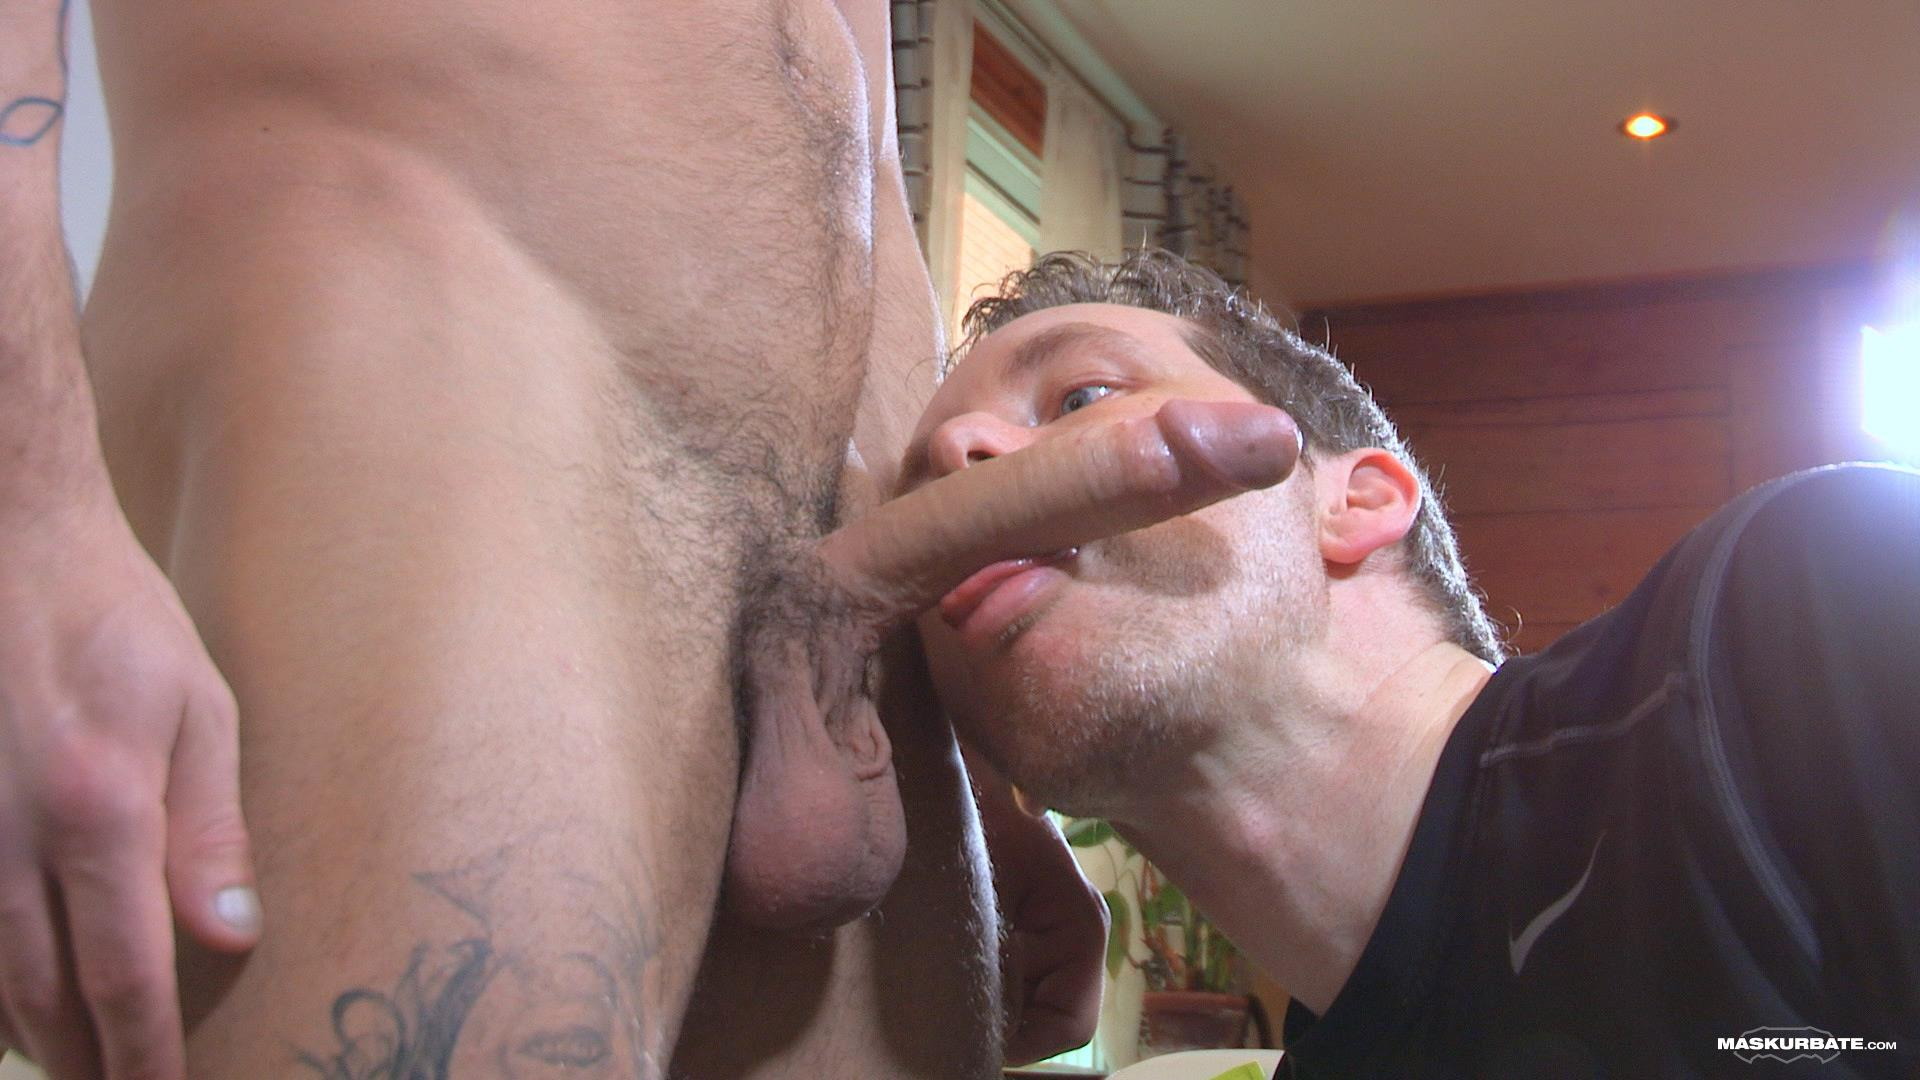 Maskurbate Carl Straight Muscle Jock With A Big Cock Amateur Gay Porn 07 Straight Muscle Hunk Gets His First Blow Job From Another Guy